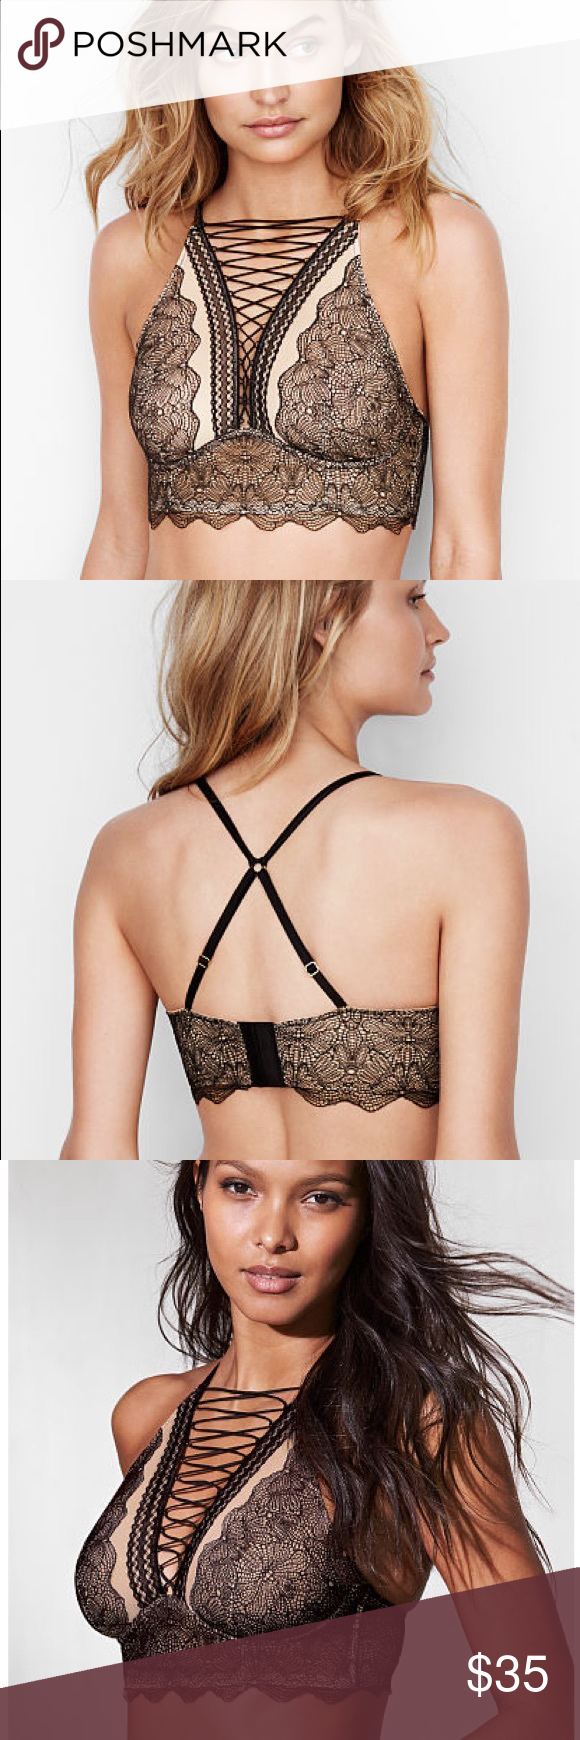 🆕 Victoria's Secret Lace-Up Bra A front lace-up on the high neck makes this sheer lace bra even more captivating, with a flexible, ultra-comfortable underwire.  Lift & Lining * Unlined * Flexible underwire cups for ultimate comfort Straps & Hooks * Adjustable straps * Back closure * Triple row of hook-and-eye closures Details & Fabric * Front lace-up  * Imported nylon/spandex Victoria's Secret Intimates & Sleepwear Bras